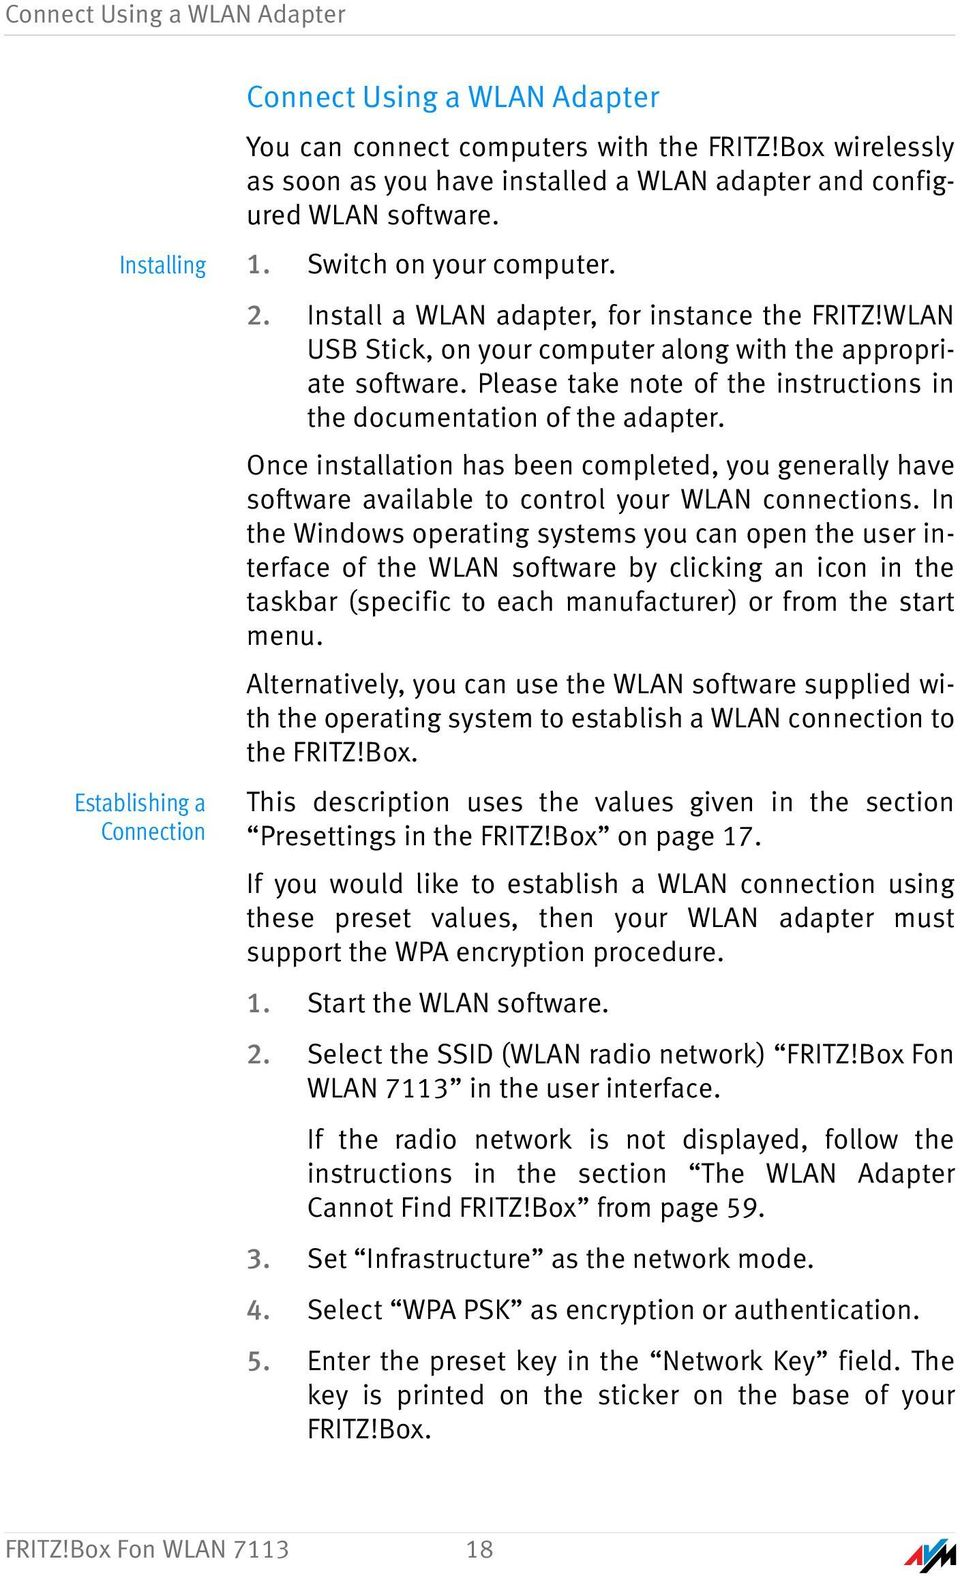 Please take note of the instructions in the documentation of the adapter. Once installation has been completed, you generally have software available to control your WLAN connections.